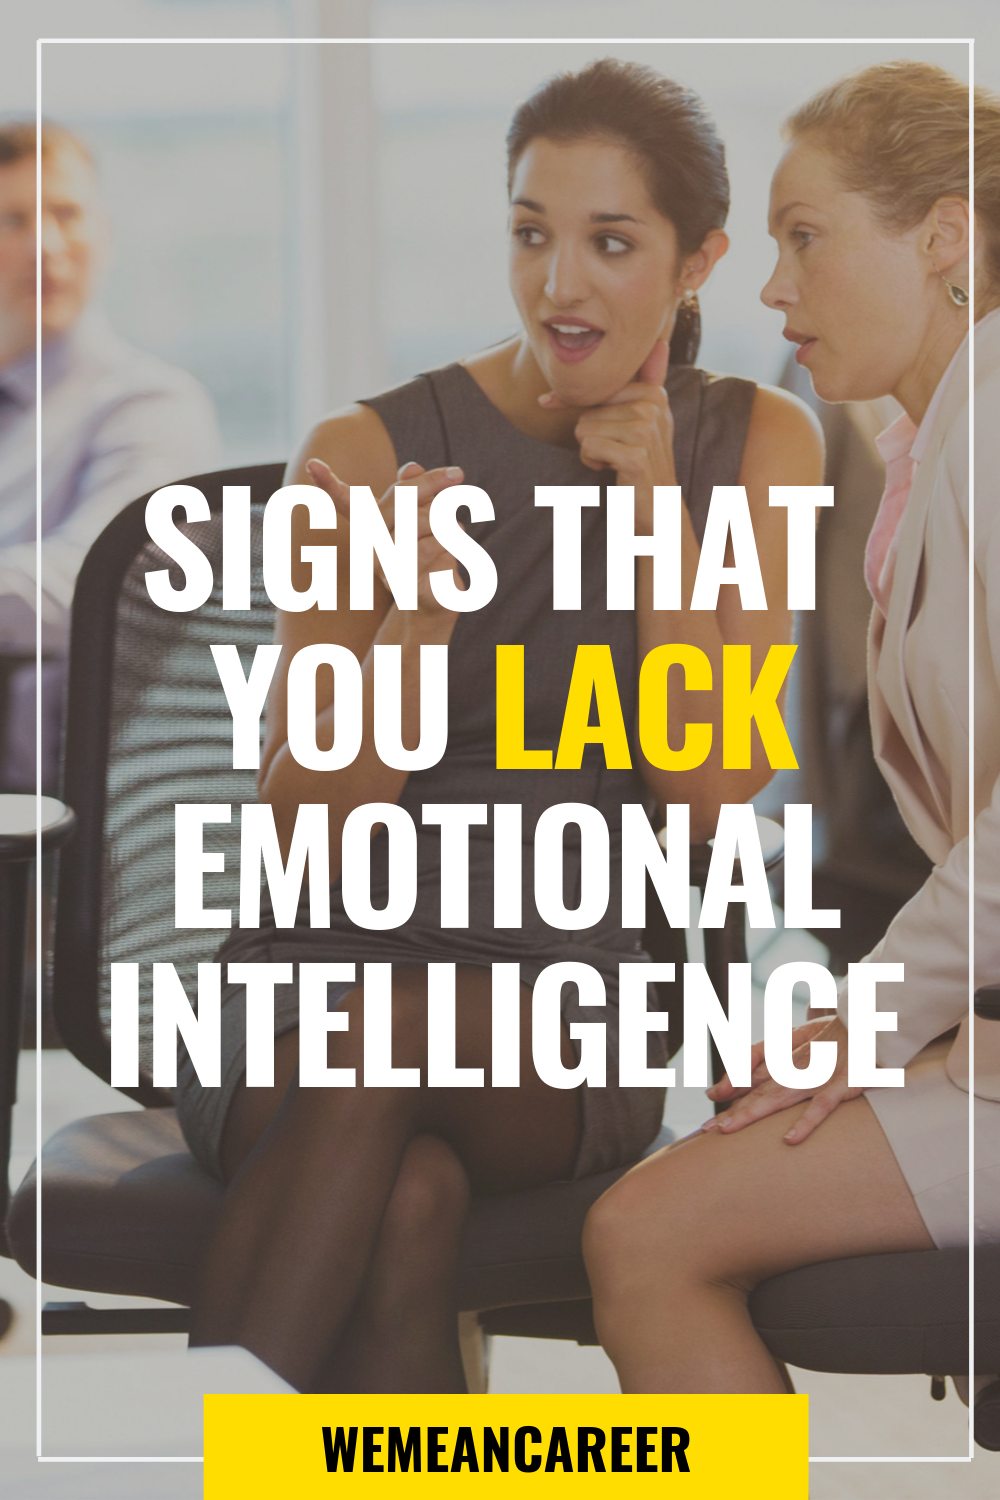 Emotional Intelligence In The Workplace (With images ...